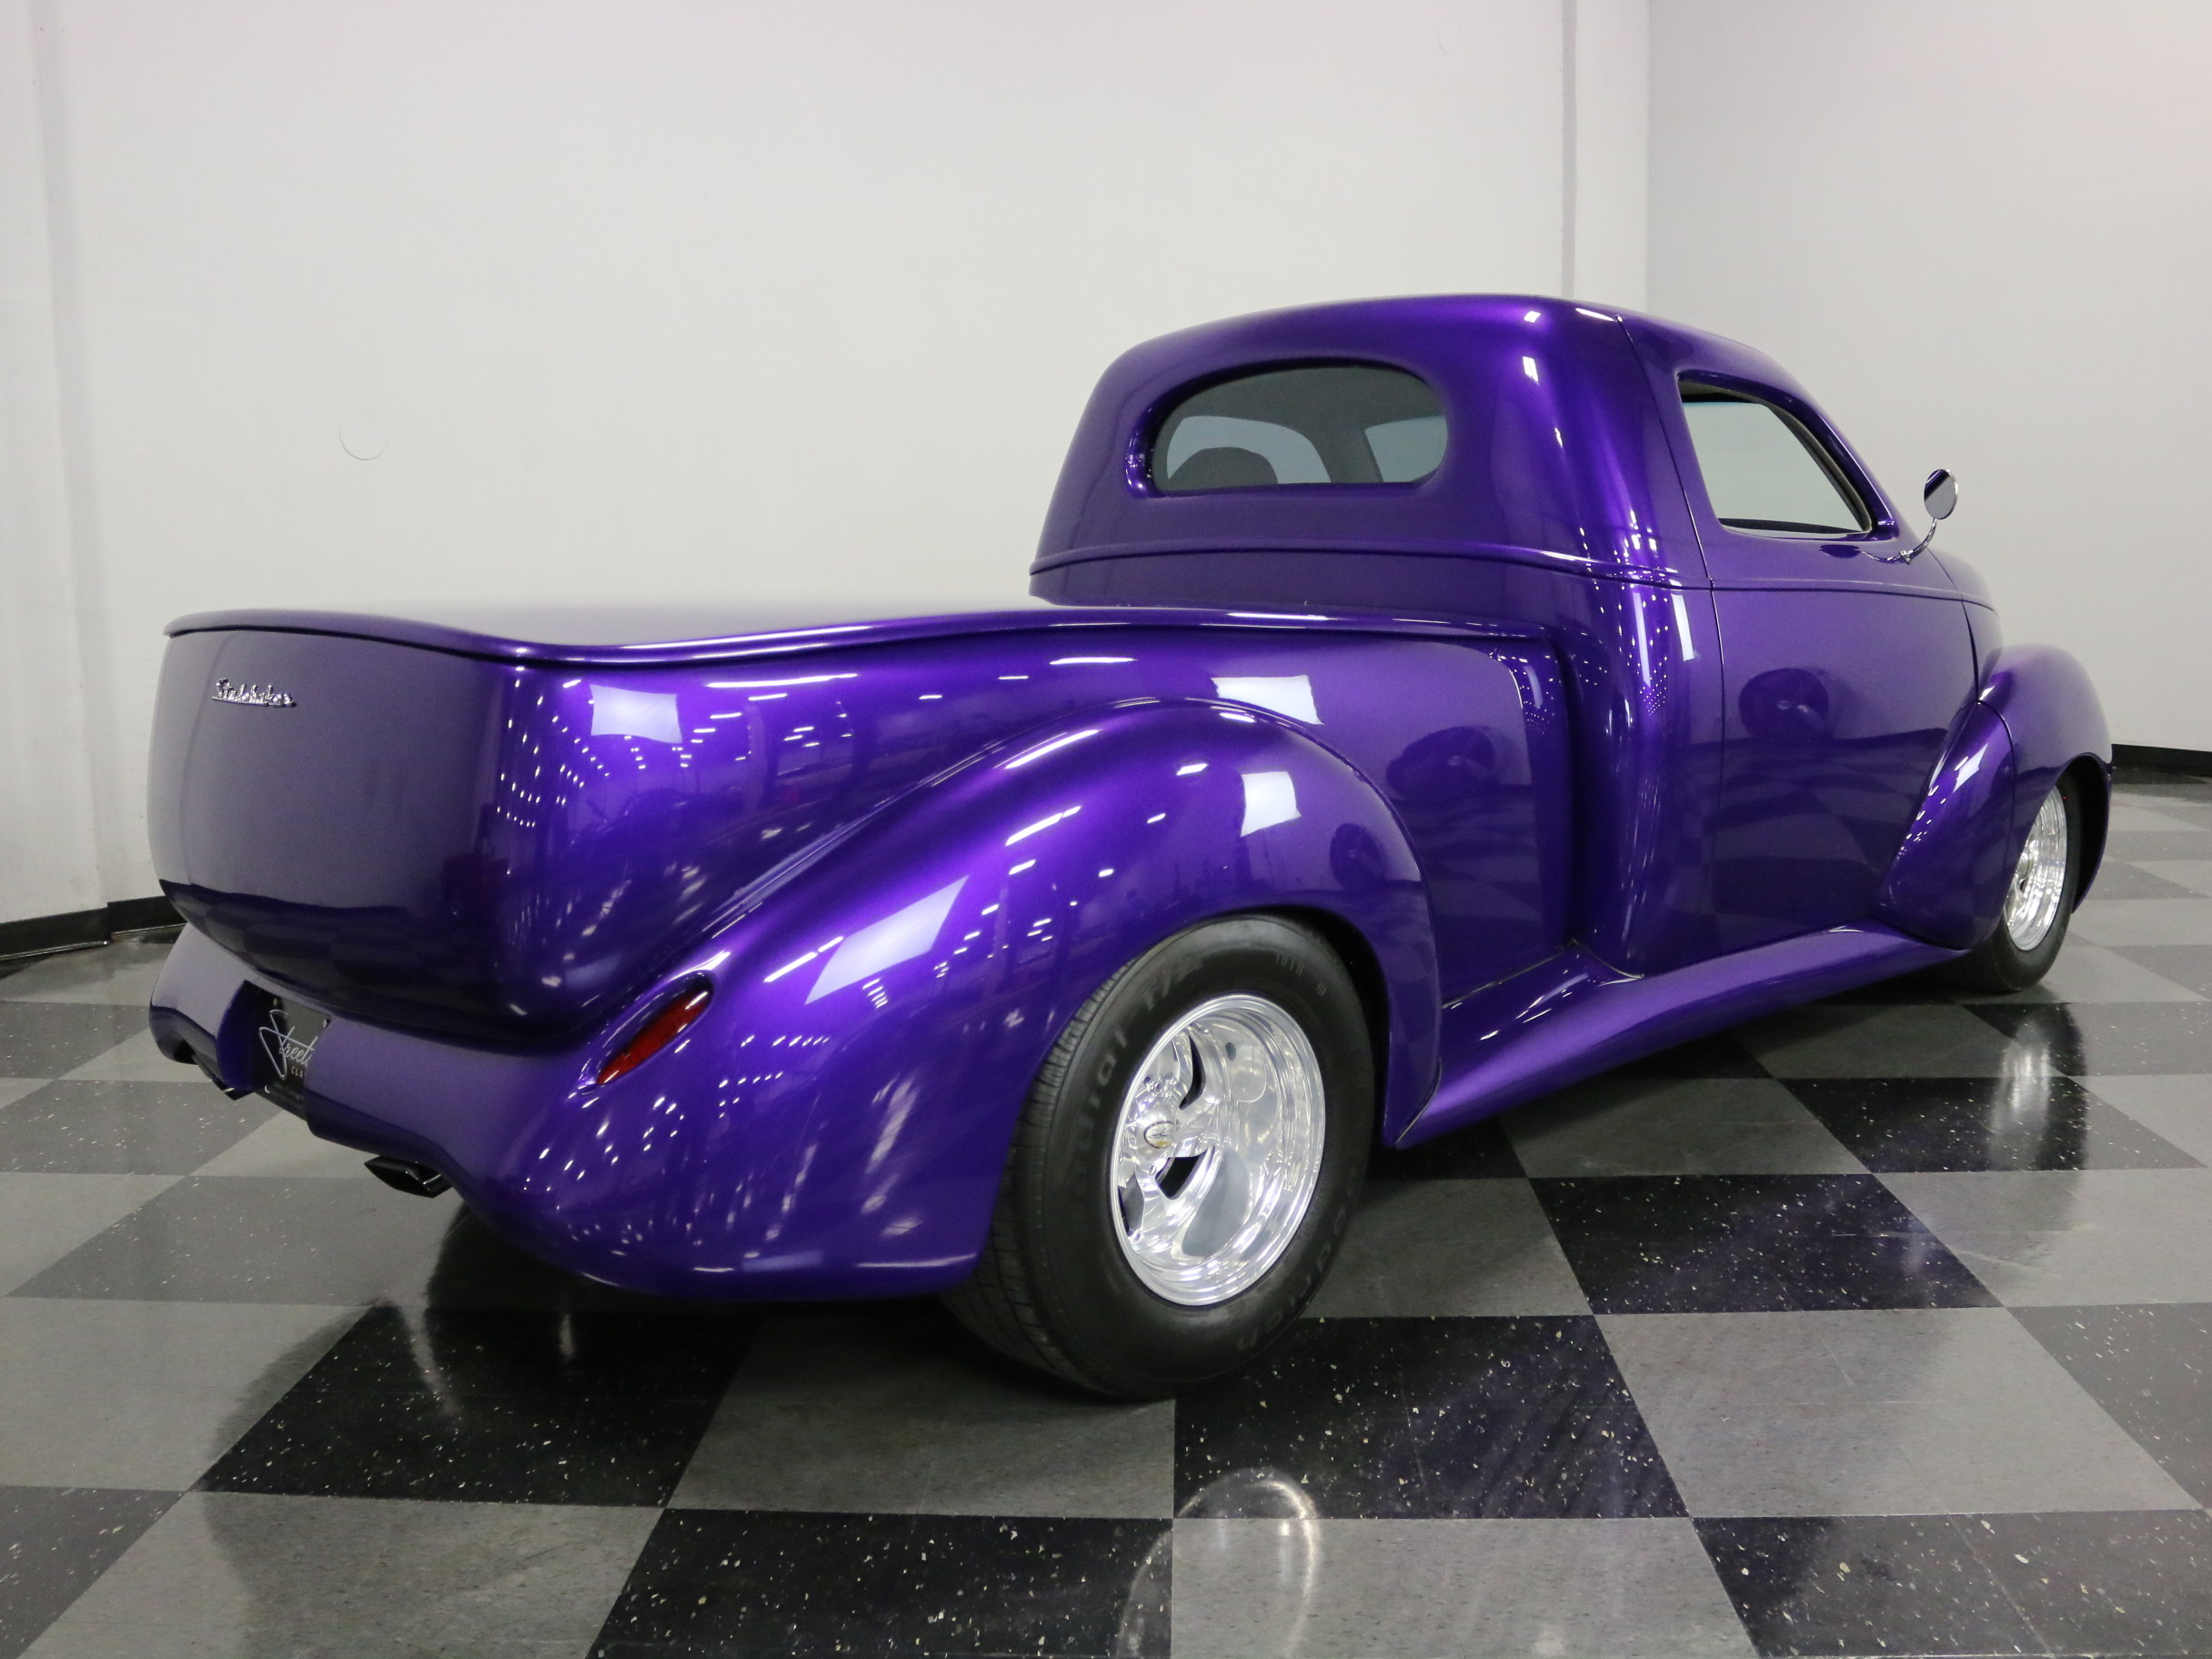 1939 Studebaker Pickup Restomod: GREAT PAINT, STRONG CRATE 350 V8, S-10 CHASSIS W/ AIR RIDE SUSPENSION, COLD A/C